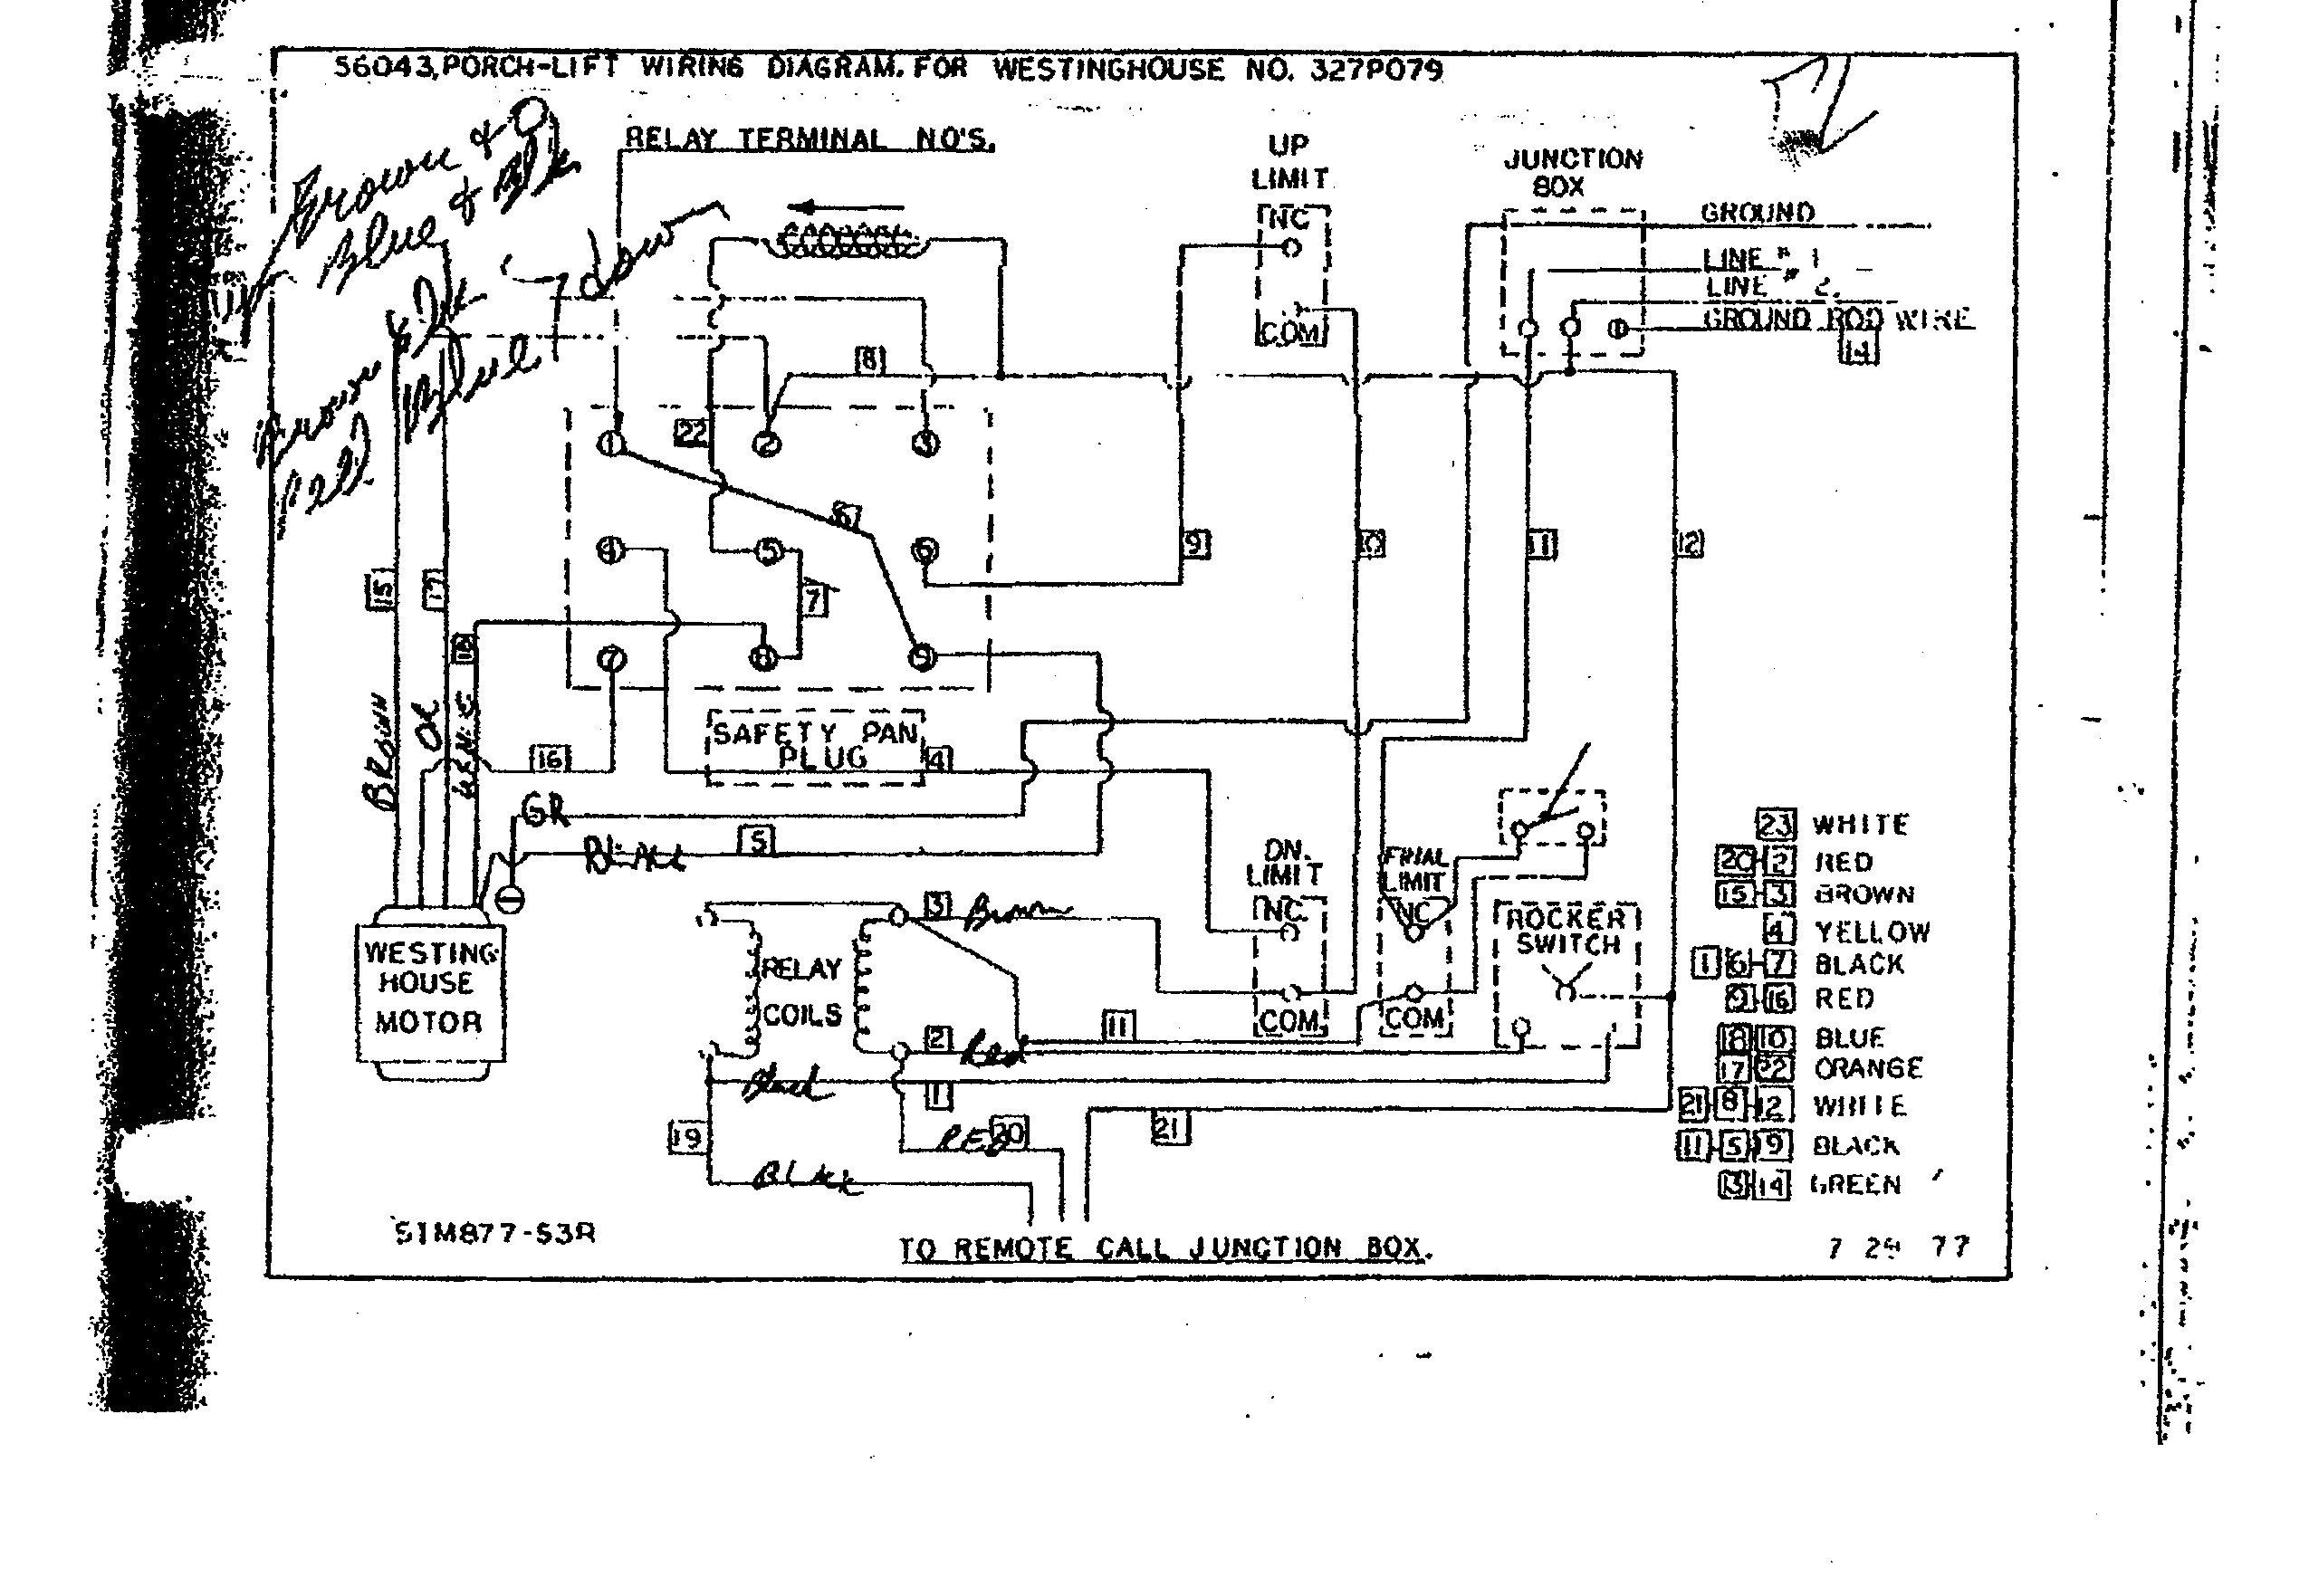 2011 01 04_160748_thyssenkrupp who where can i get help with westinghouse motor wiring? westinghouse ac motor wiring diagram at edmiracle.co